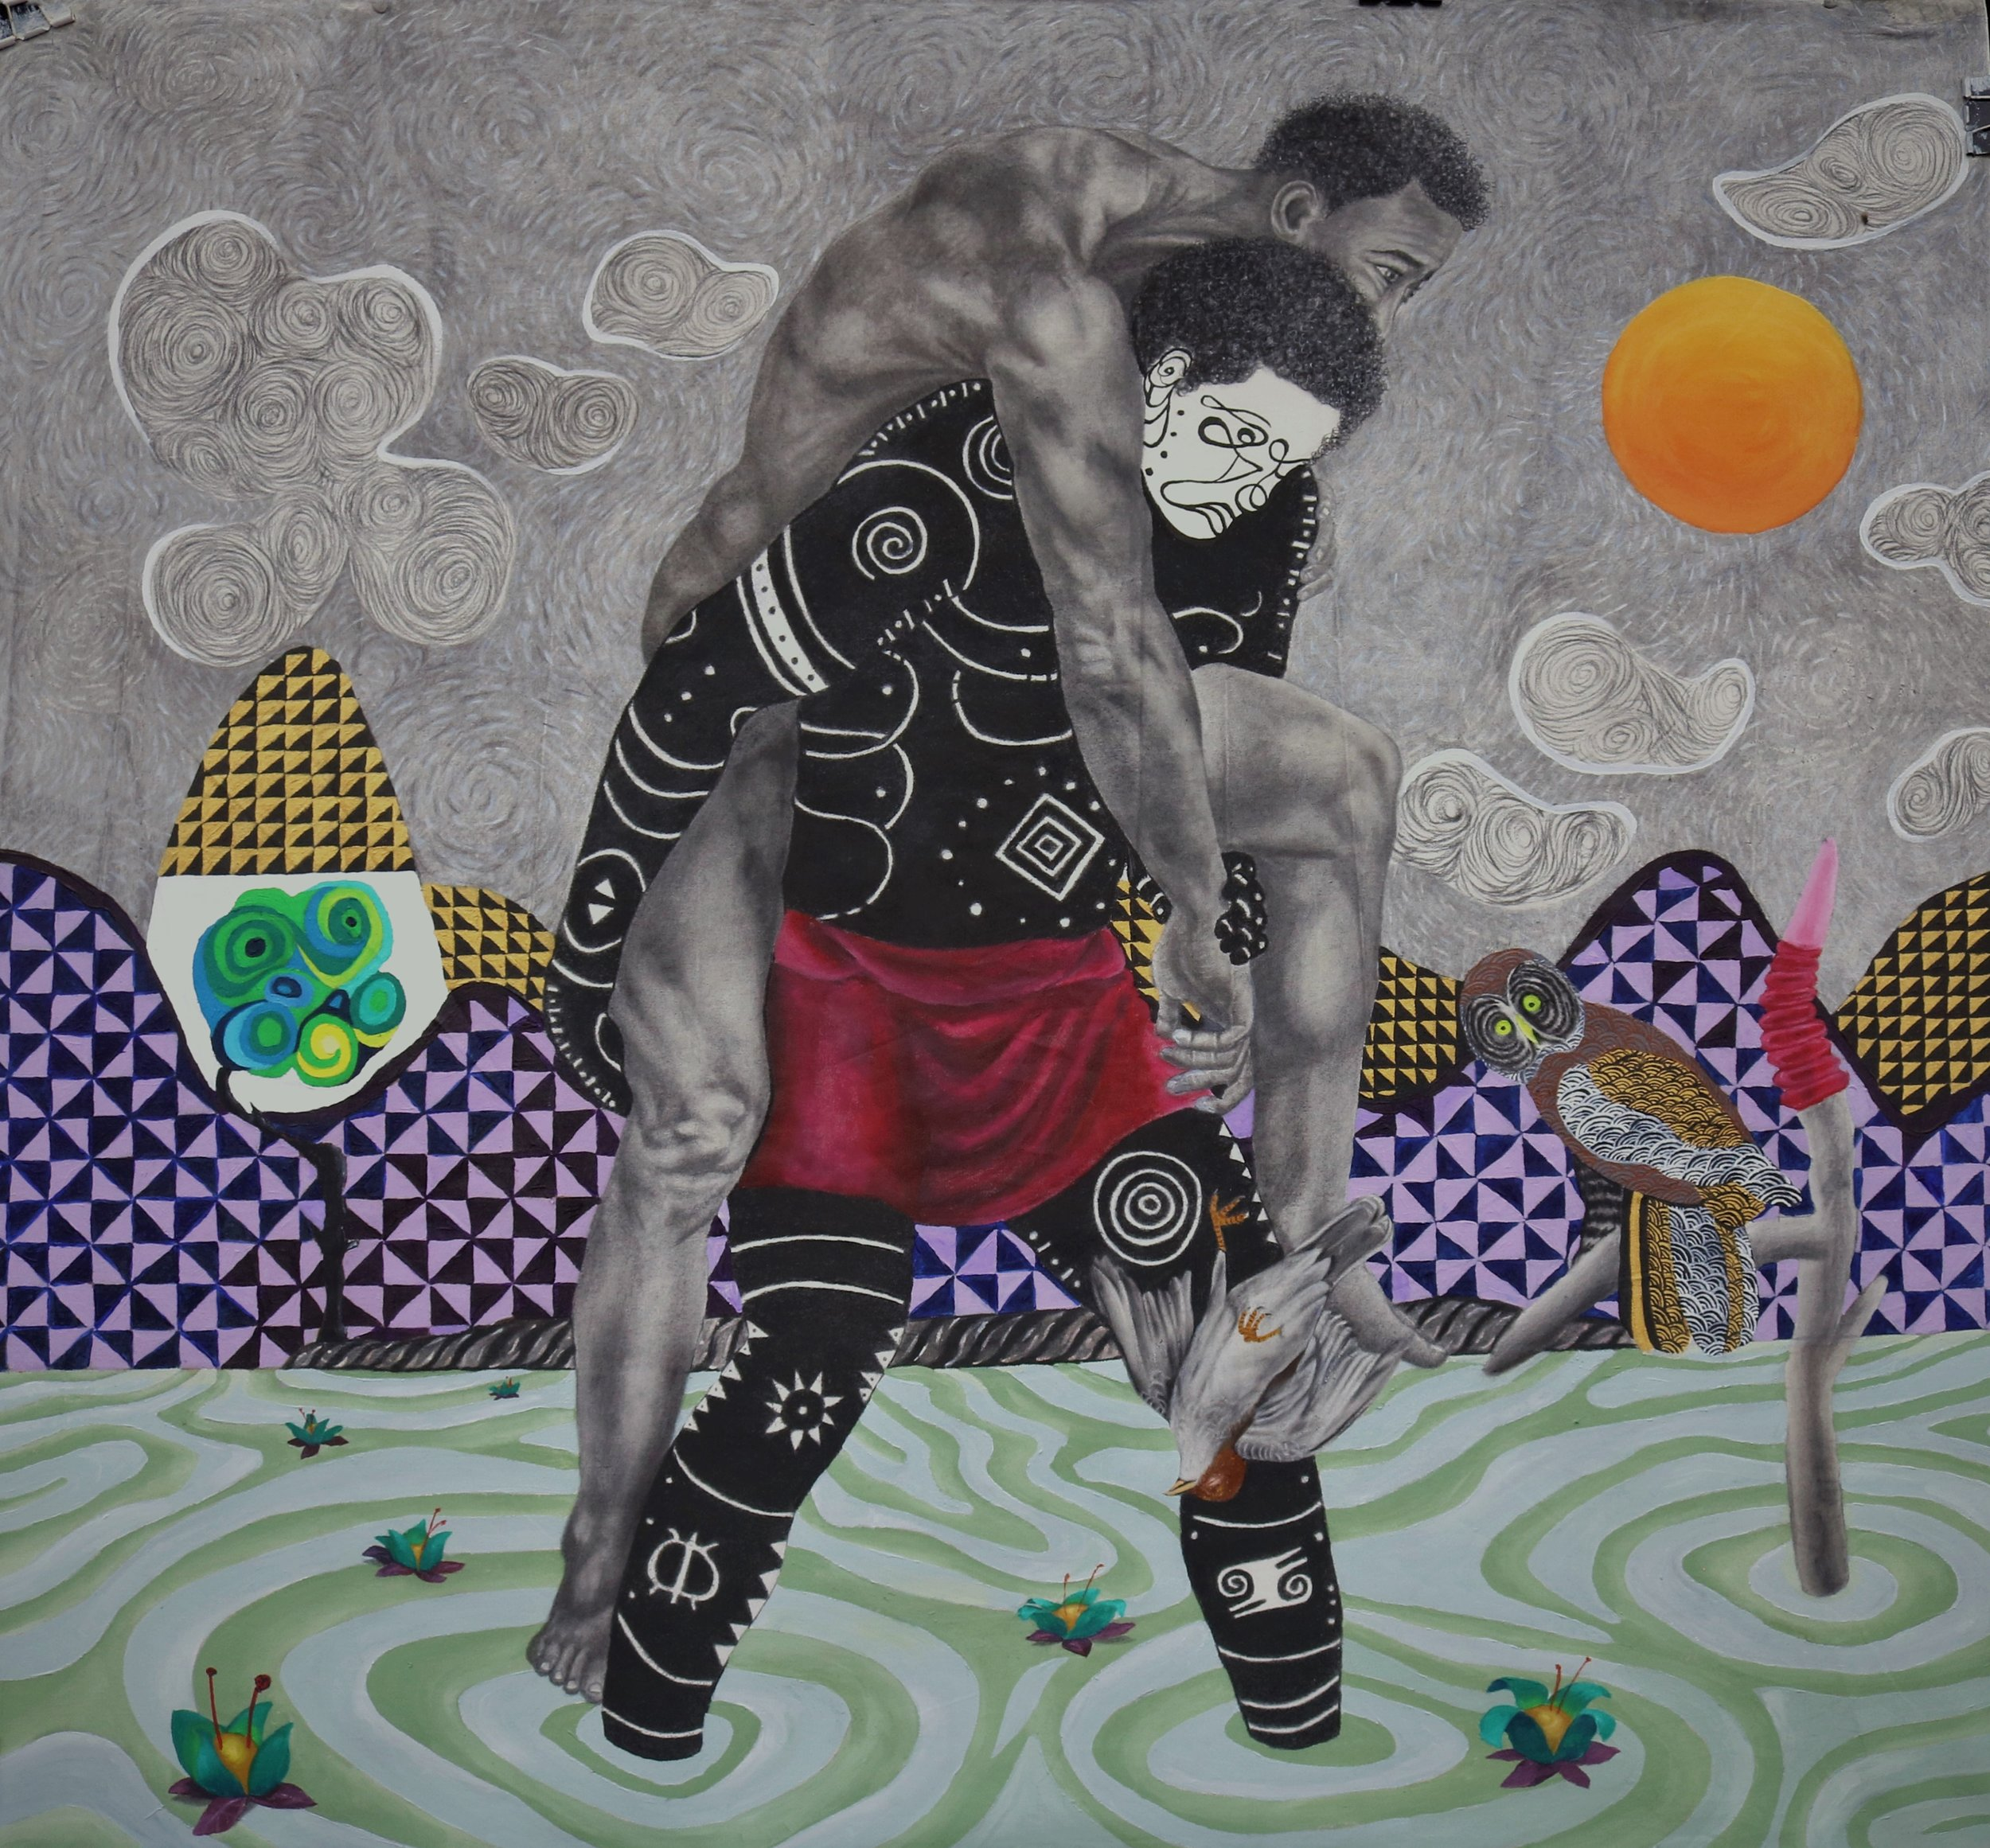 Carry You Home, Acrylic, oil, charcoal, pencil on canvas, 121 x 123 cm, 2019, Kelechi Nwaneri